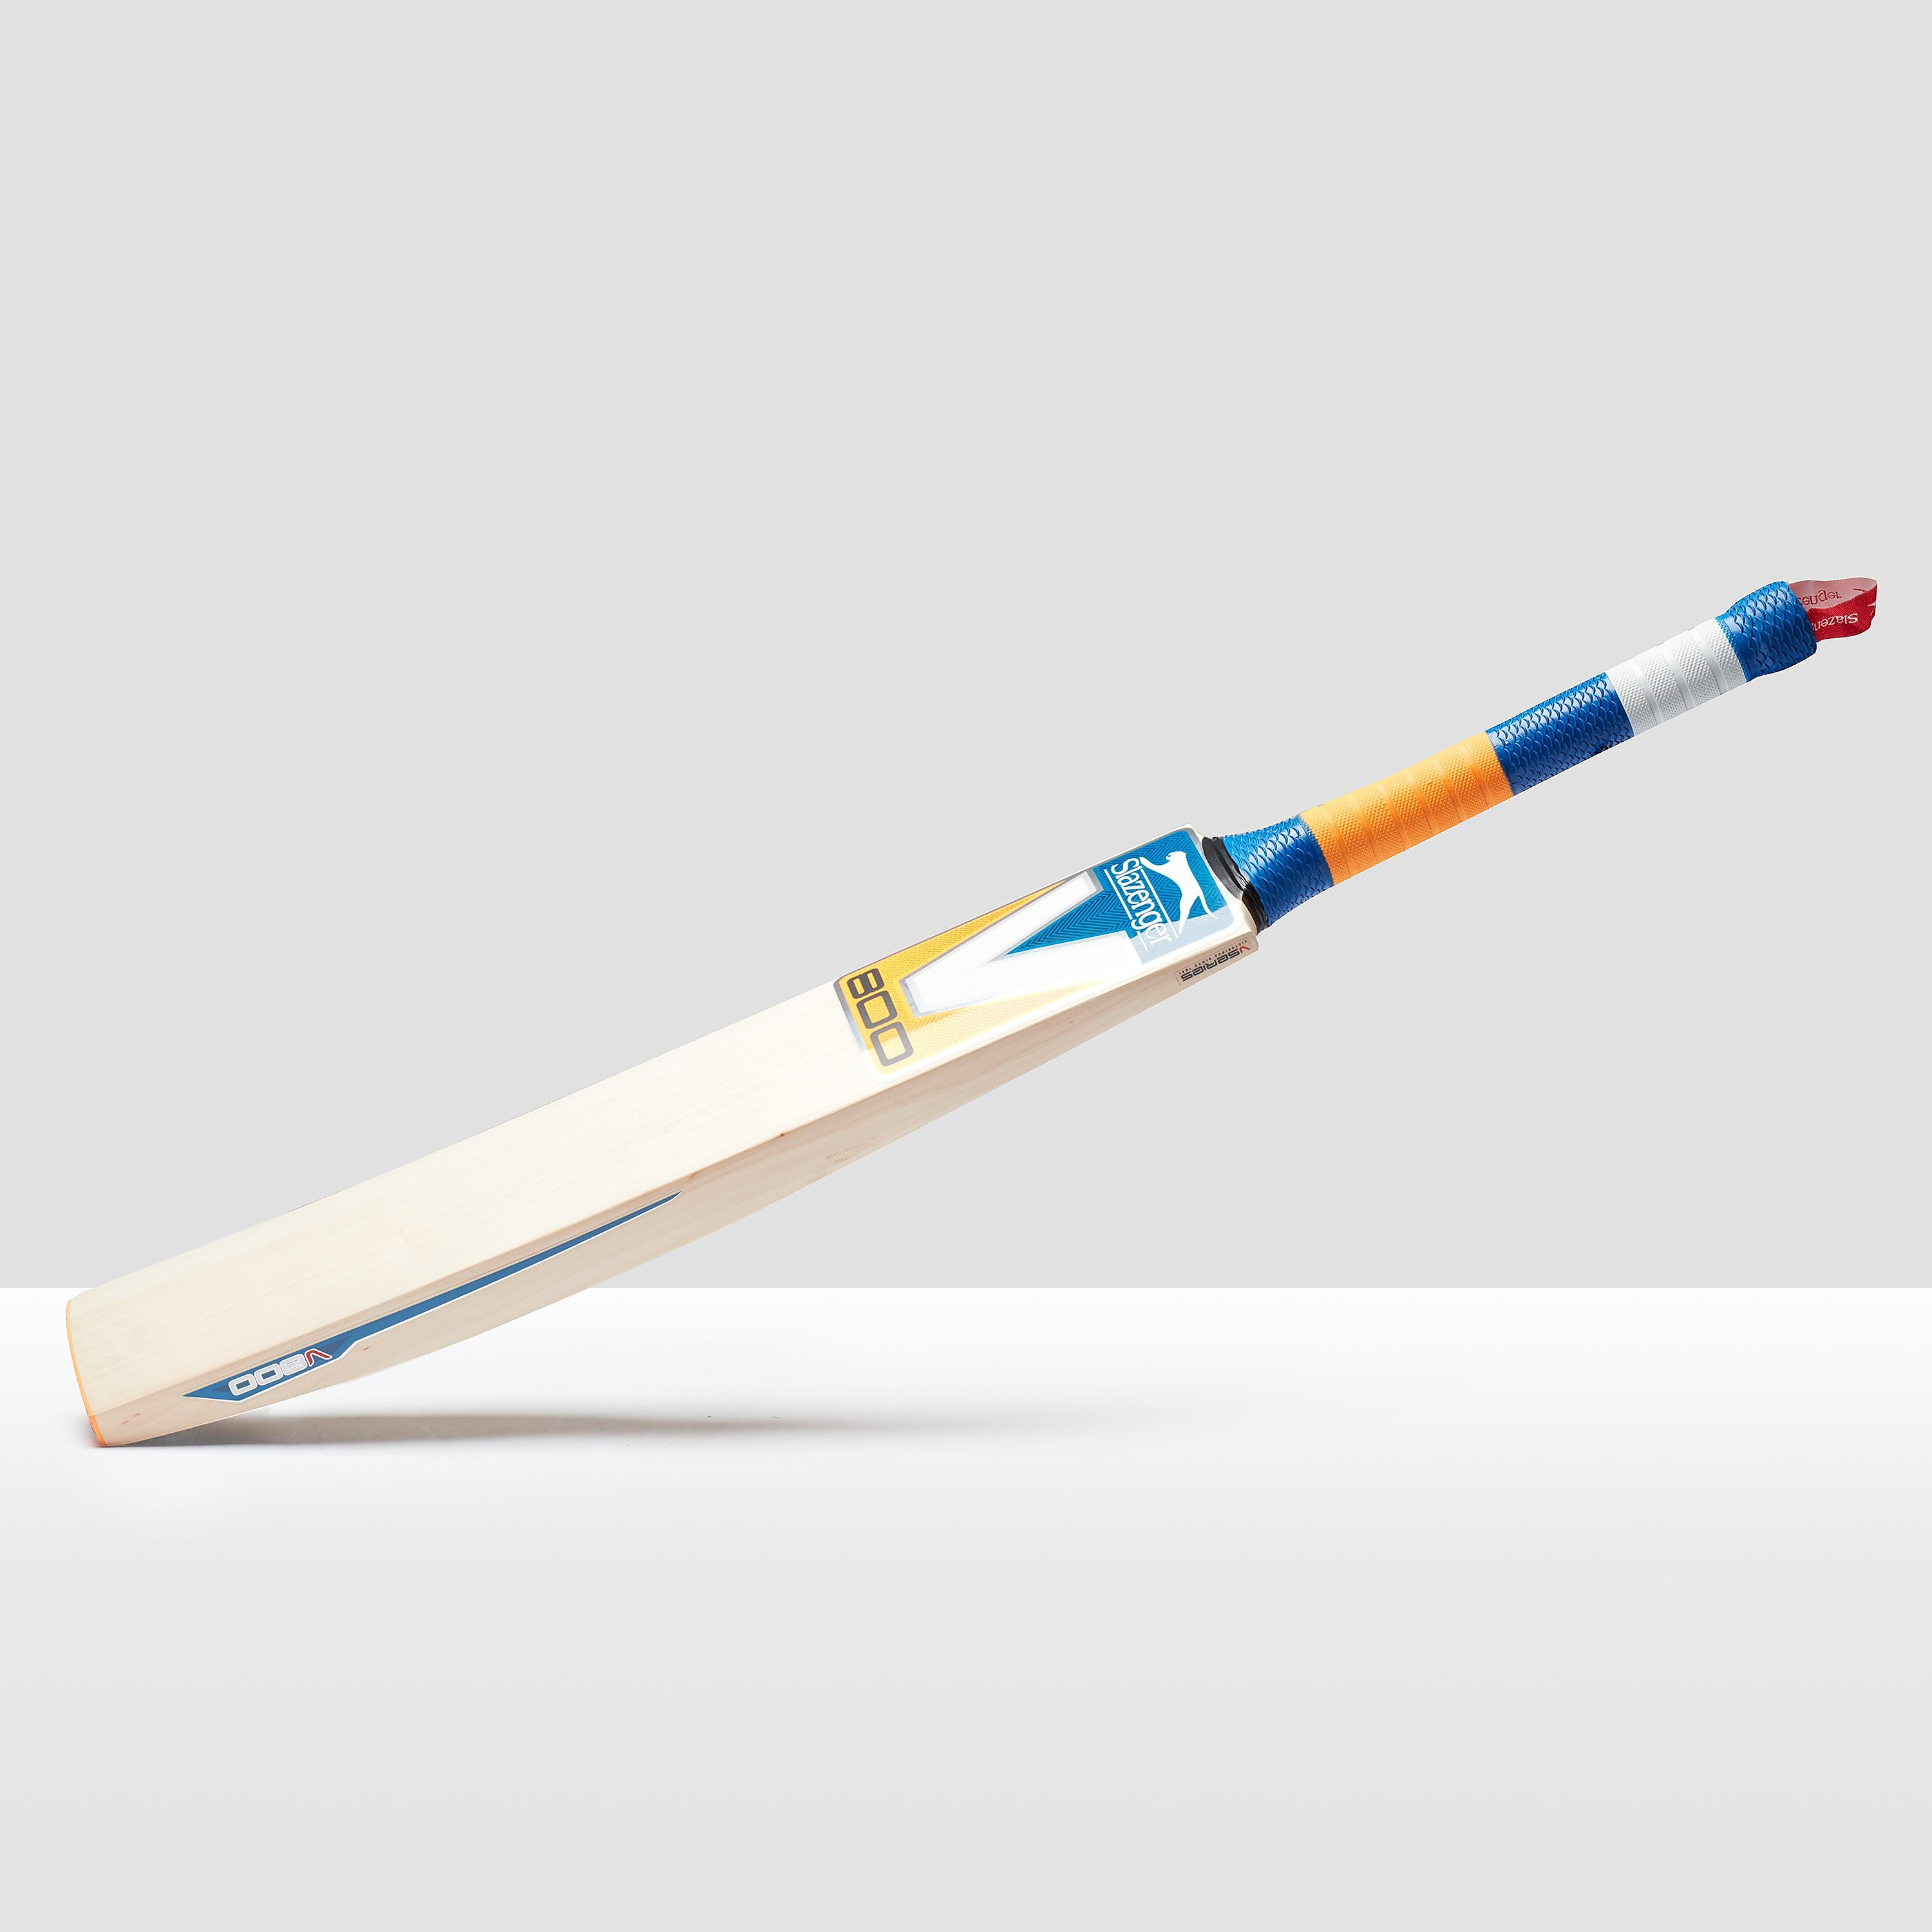 Slazenger V800 G1+ Cricket Bat